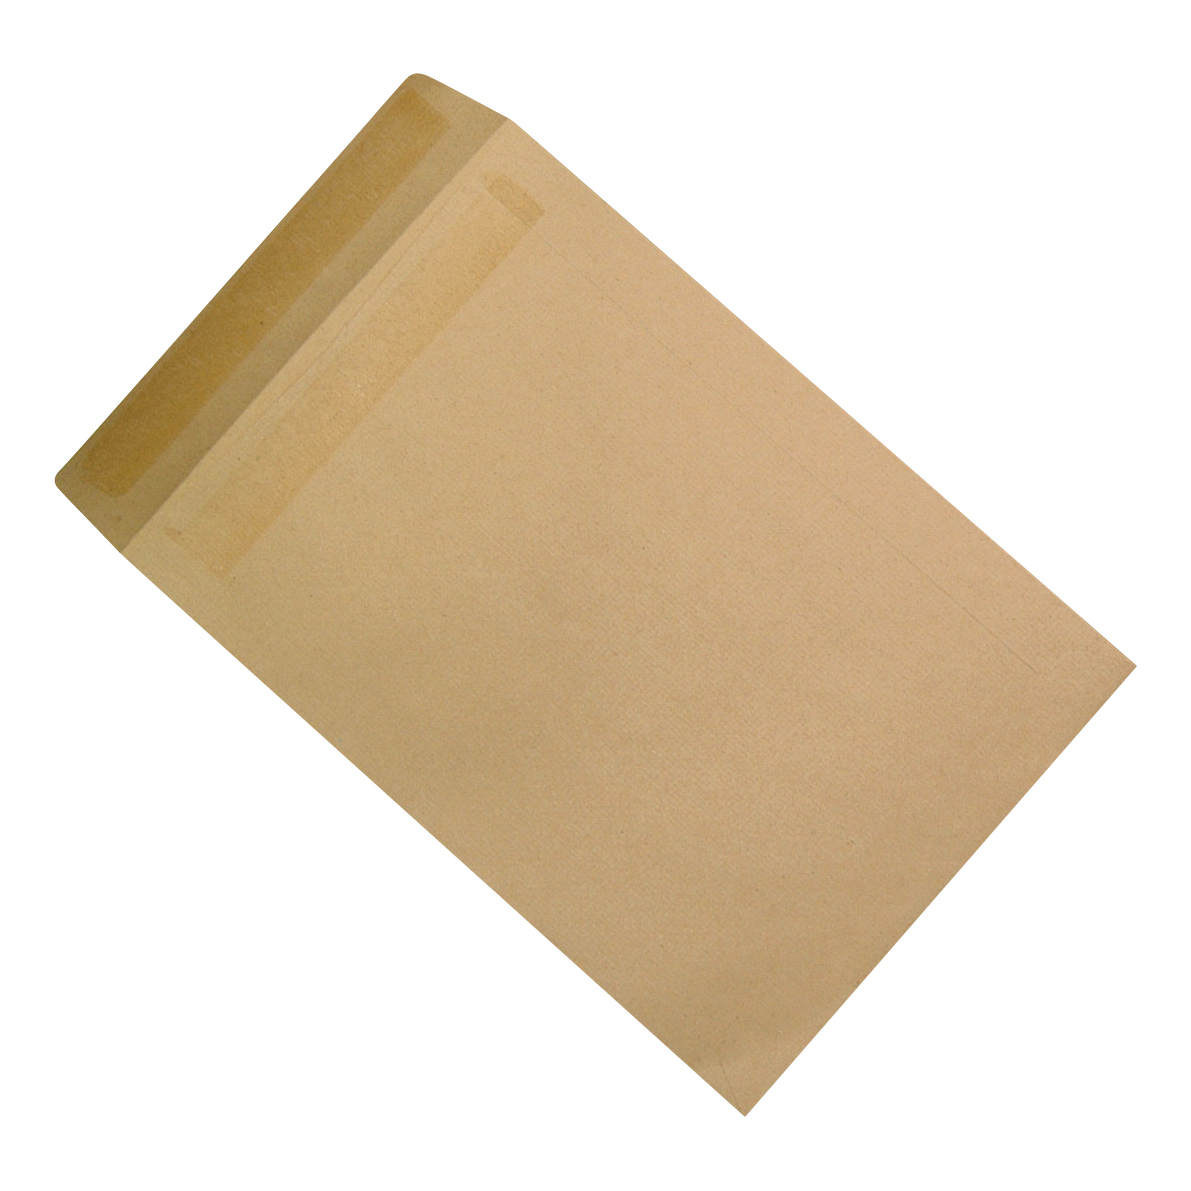 C4 5 Star Office Envelopes FSC Pocket Self Seal 115gsm C4 324x229mm Manilla Pack 250